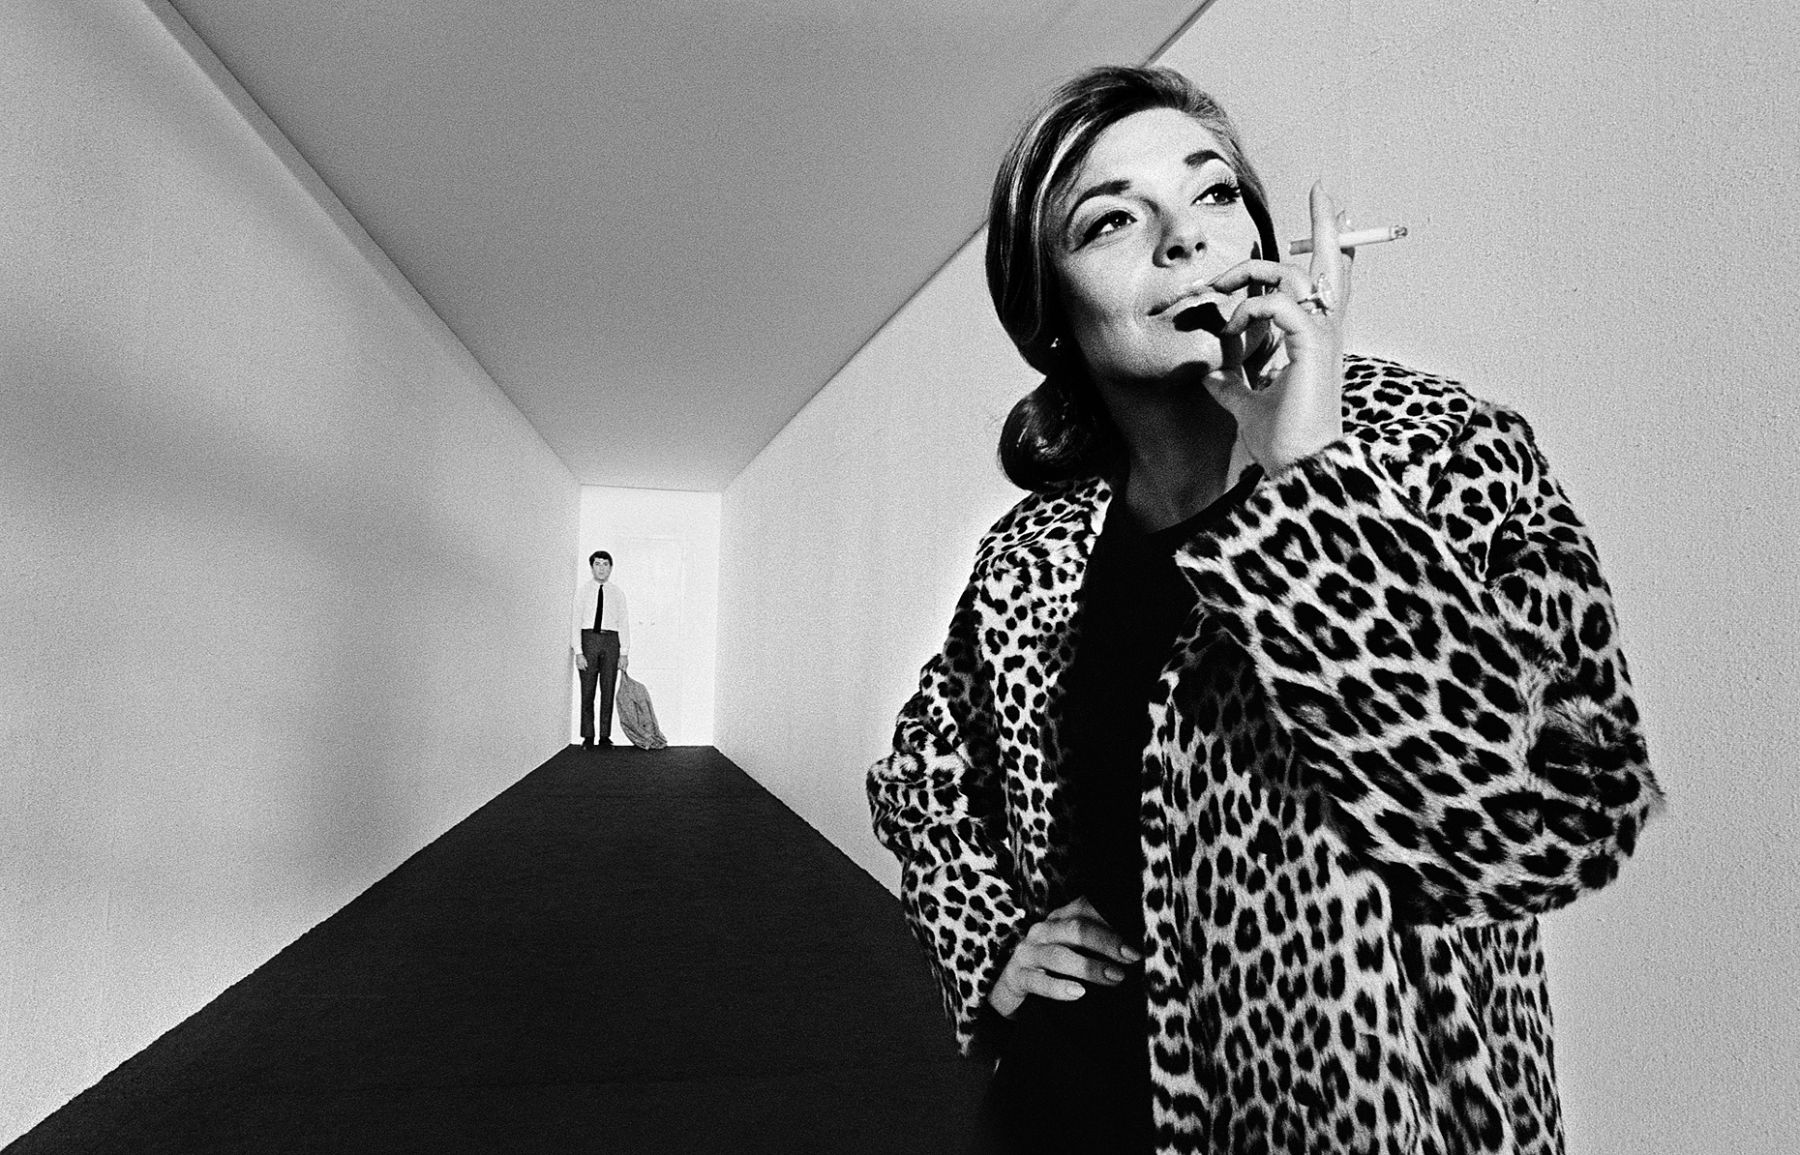 Anne Bancroft and Dustin Hoffman on a specially constructed set at Paramount during filming of The Graduate, 1967.